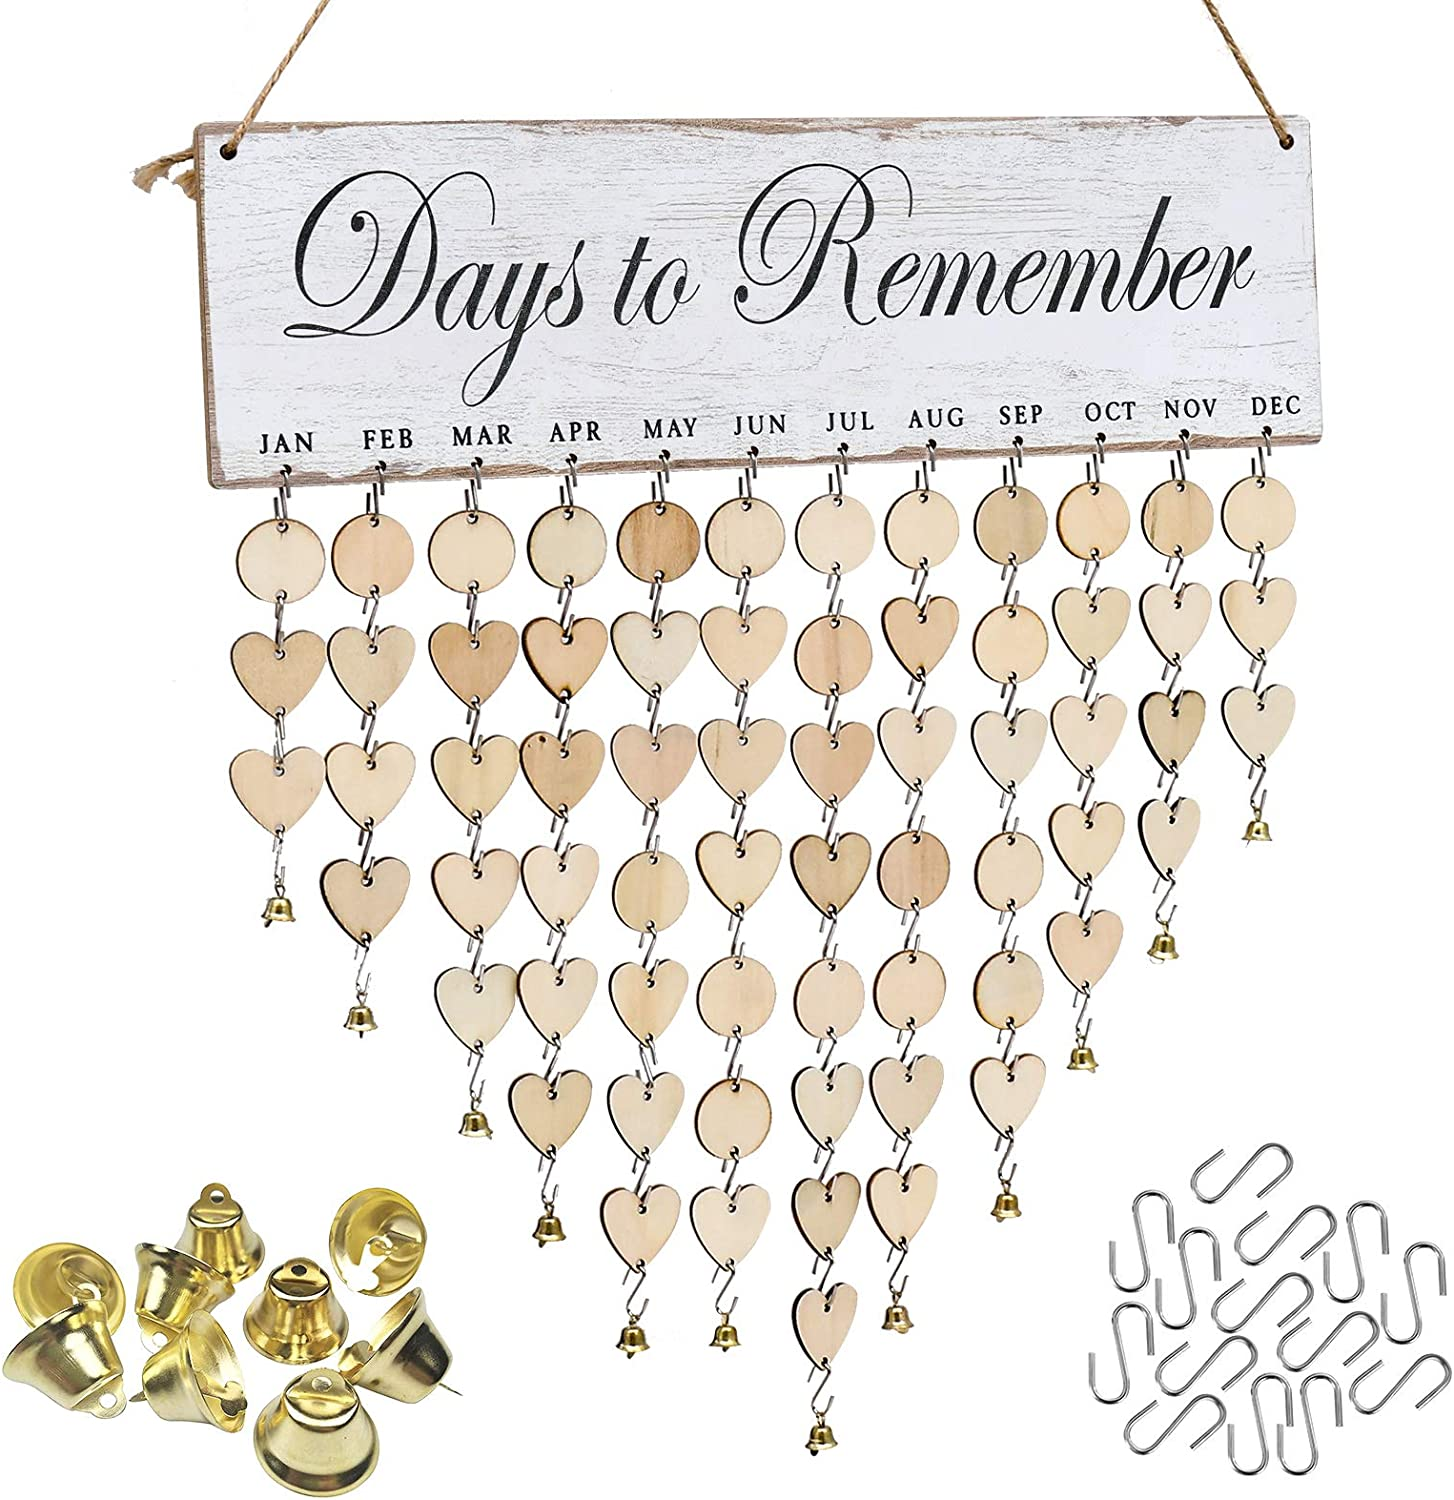 ATOBART Days to Remember Board - DIY Wood Family Birthday Reminder Calendar Hanging Board for Important Dates Tracker Home Decorative Plaque Wall Hanging Handmade Creative Christmas Day Gifts